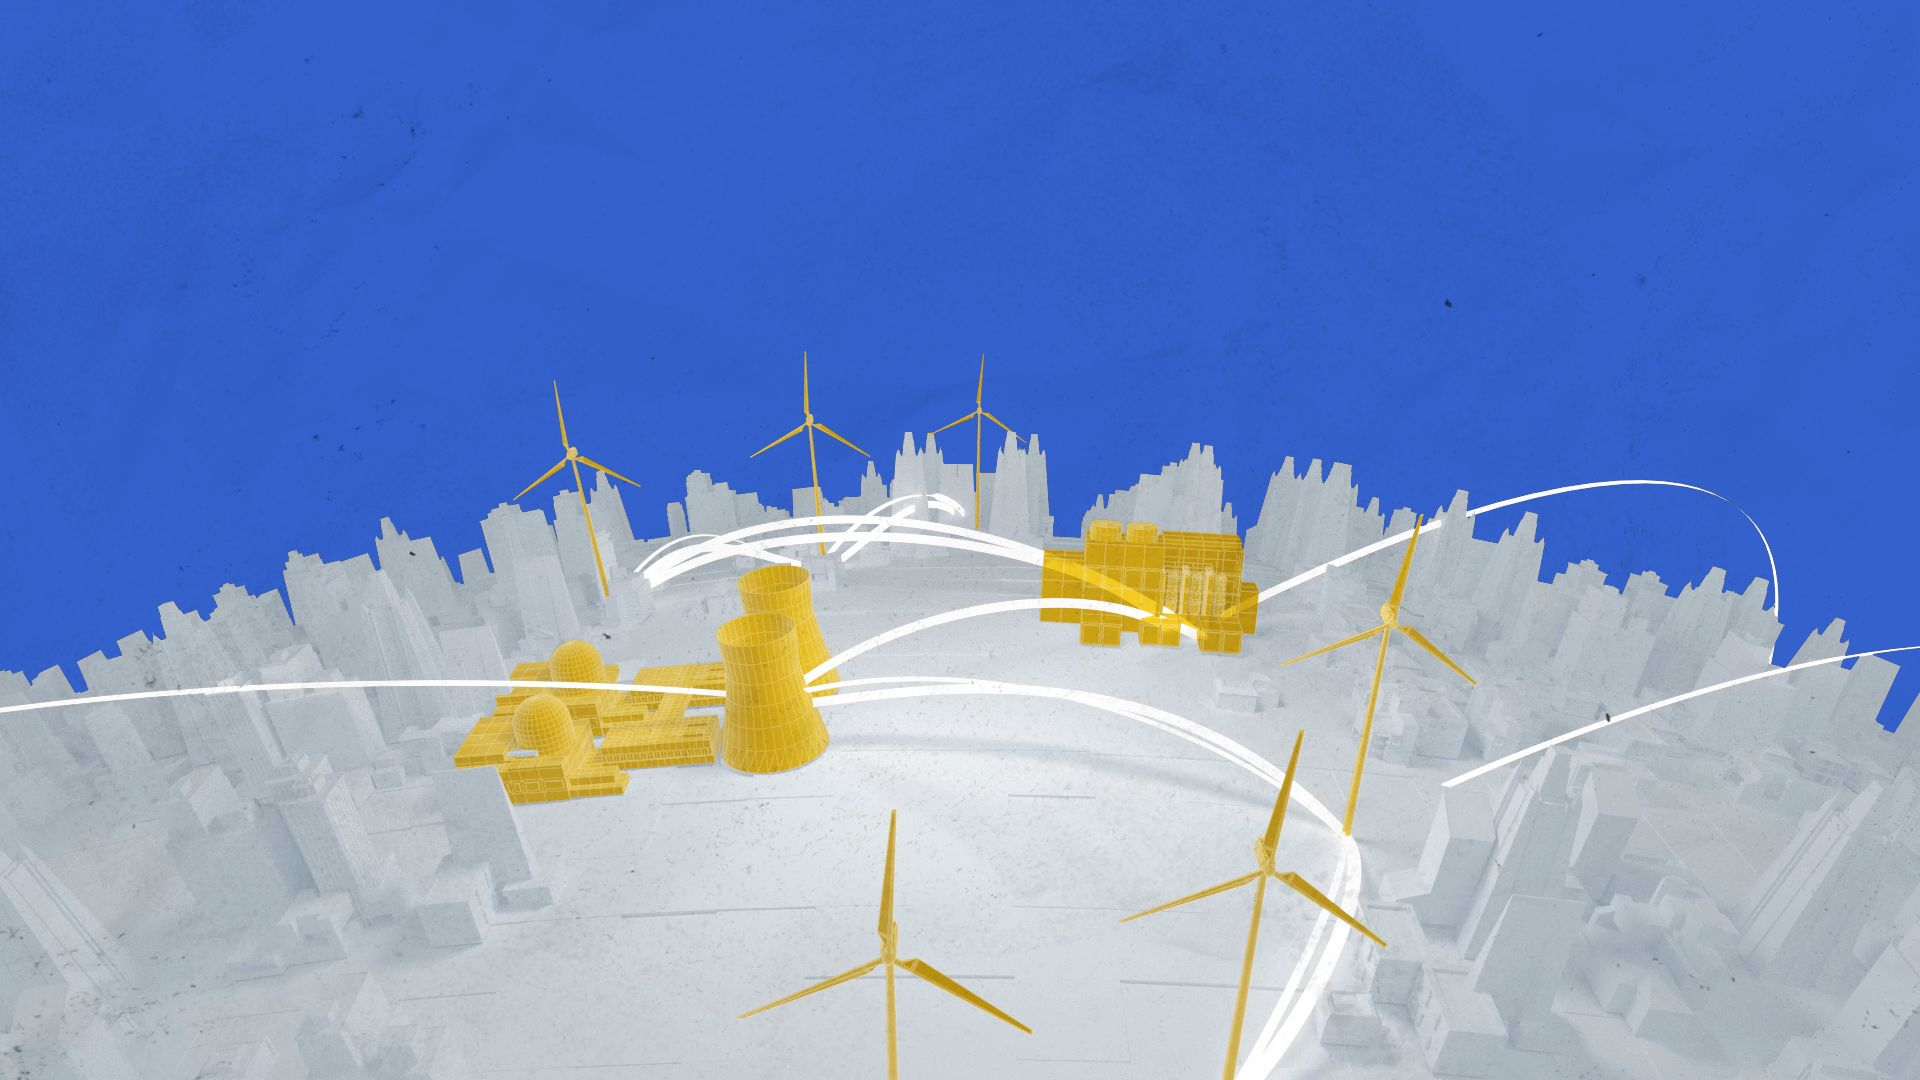 Ministerial Conference on Clean Energy focuses on the nuclear future